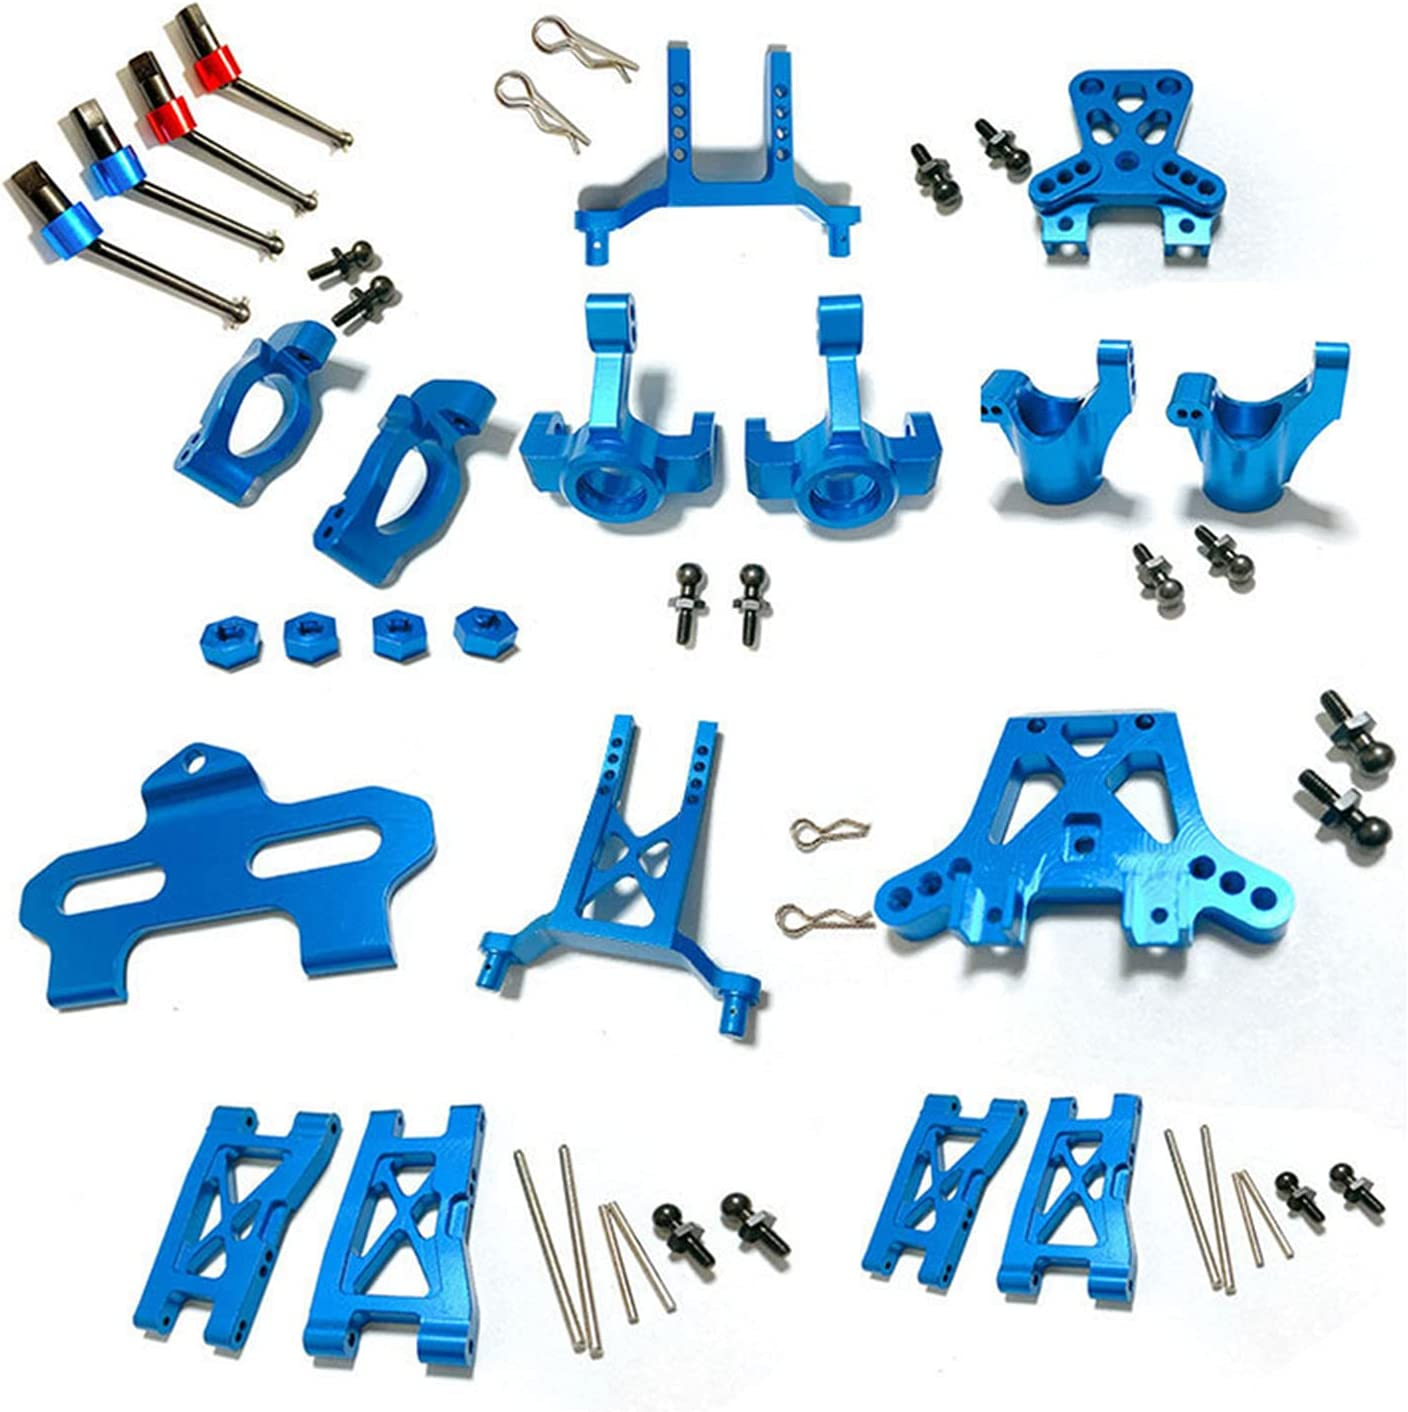 Our shop OFFers the best service XHSESA Full Set Blue RC Shipping included Universal Accessories Hardened CVD Metal